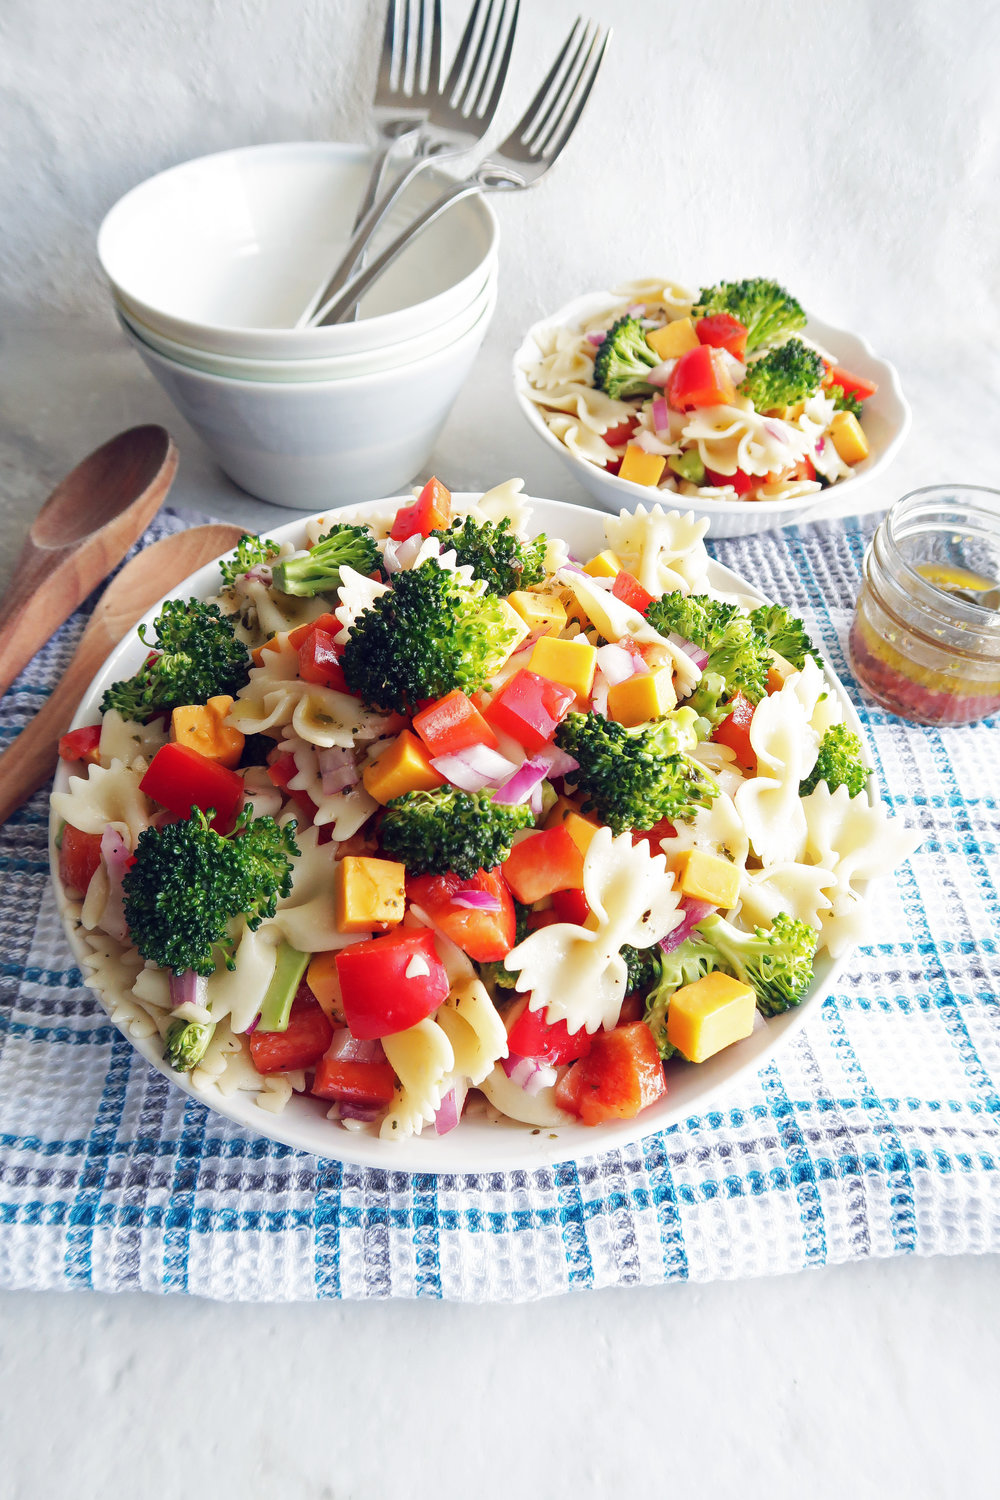 Broccoli Cheddar Pasta Salad with Tangy Italian Vinaigrette in a large pasta bowl, a small bowl of pasta salad, dressing in a small jar, and bowls and forks in the background.